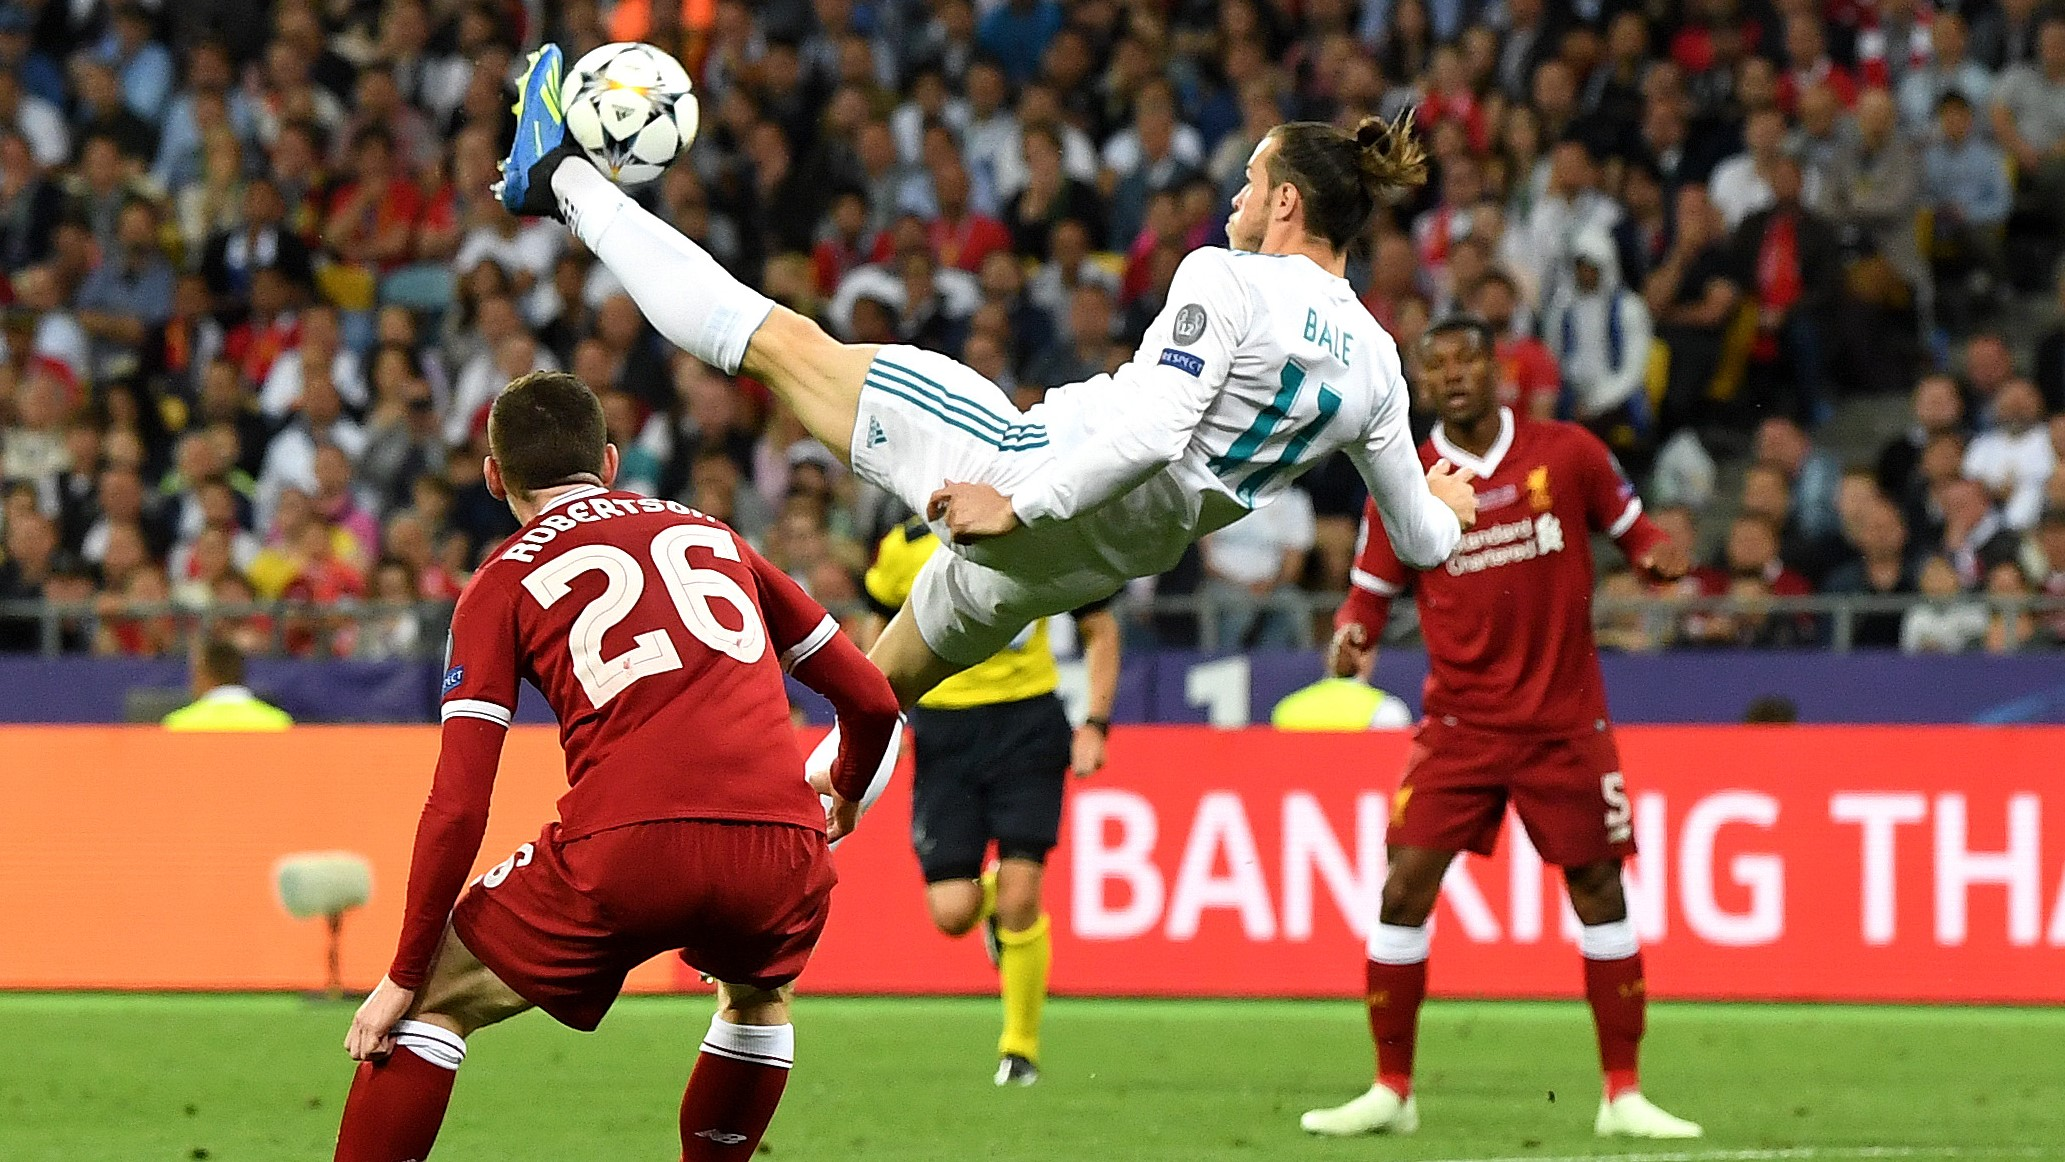 gareth-bale-real-madrid-liverpool-ucl_1v2dk38s61354178paktlmsqc0